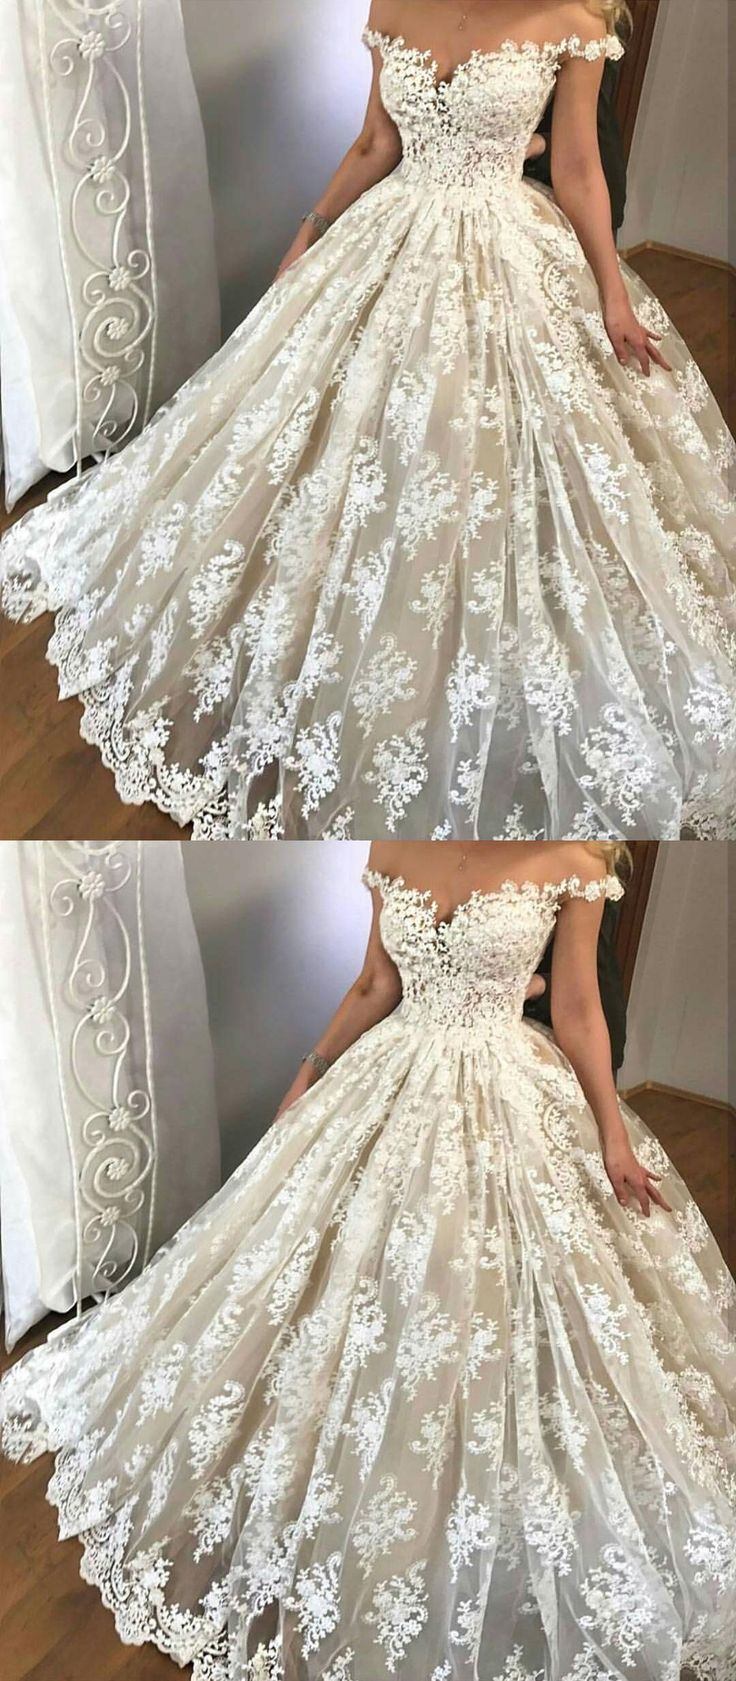 unique off the shoulder wedding dresses, glamorous wedding gowns with appliques, elegant light champagne lace bridal dresses #weddingdresses